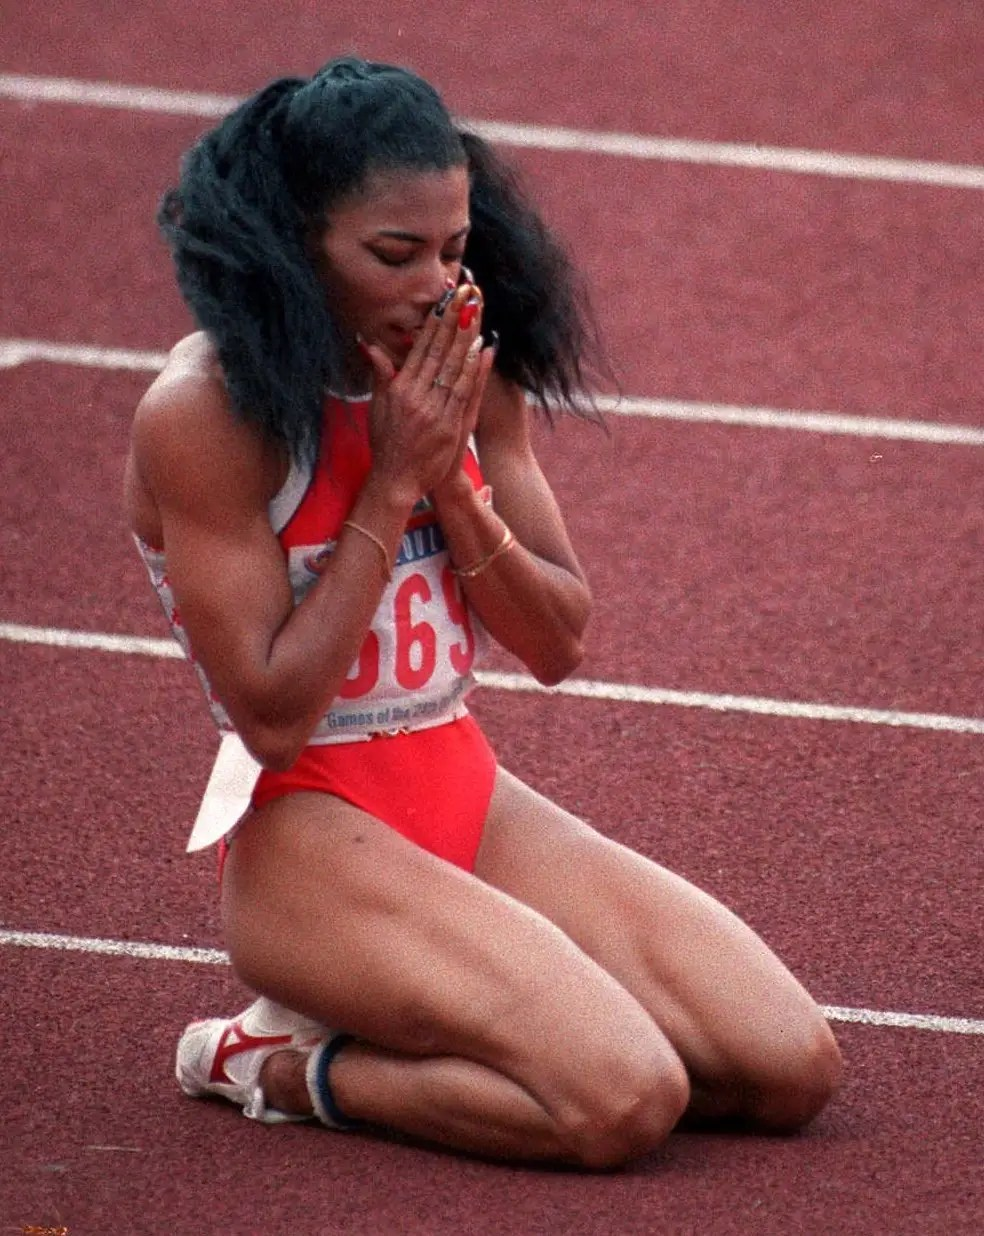 Seoul, 1988: Florence Griffith Joyner fell to her knees after smashing the world record for the fastest time to complete the 200-metre Olympic final. Joyner died just 10 years later in 1998 of an apparent heart seizure. She was 38.